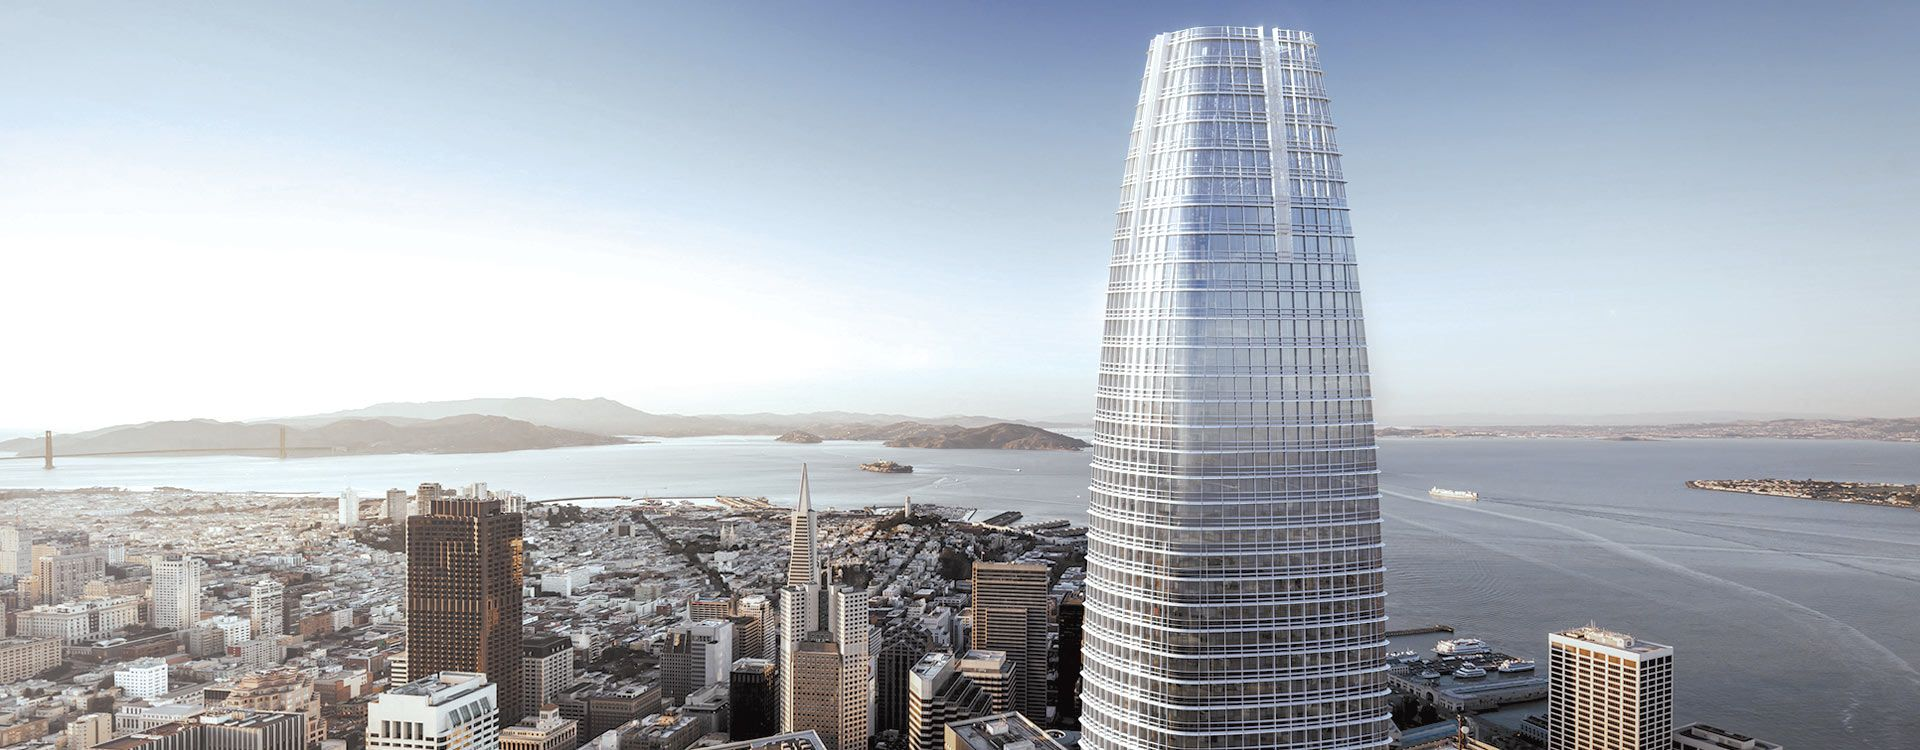 Salesforce tower san francisco wsp publicscrutiny Images